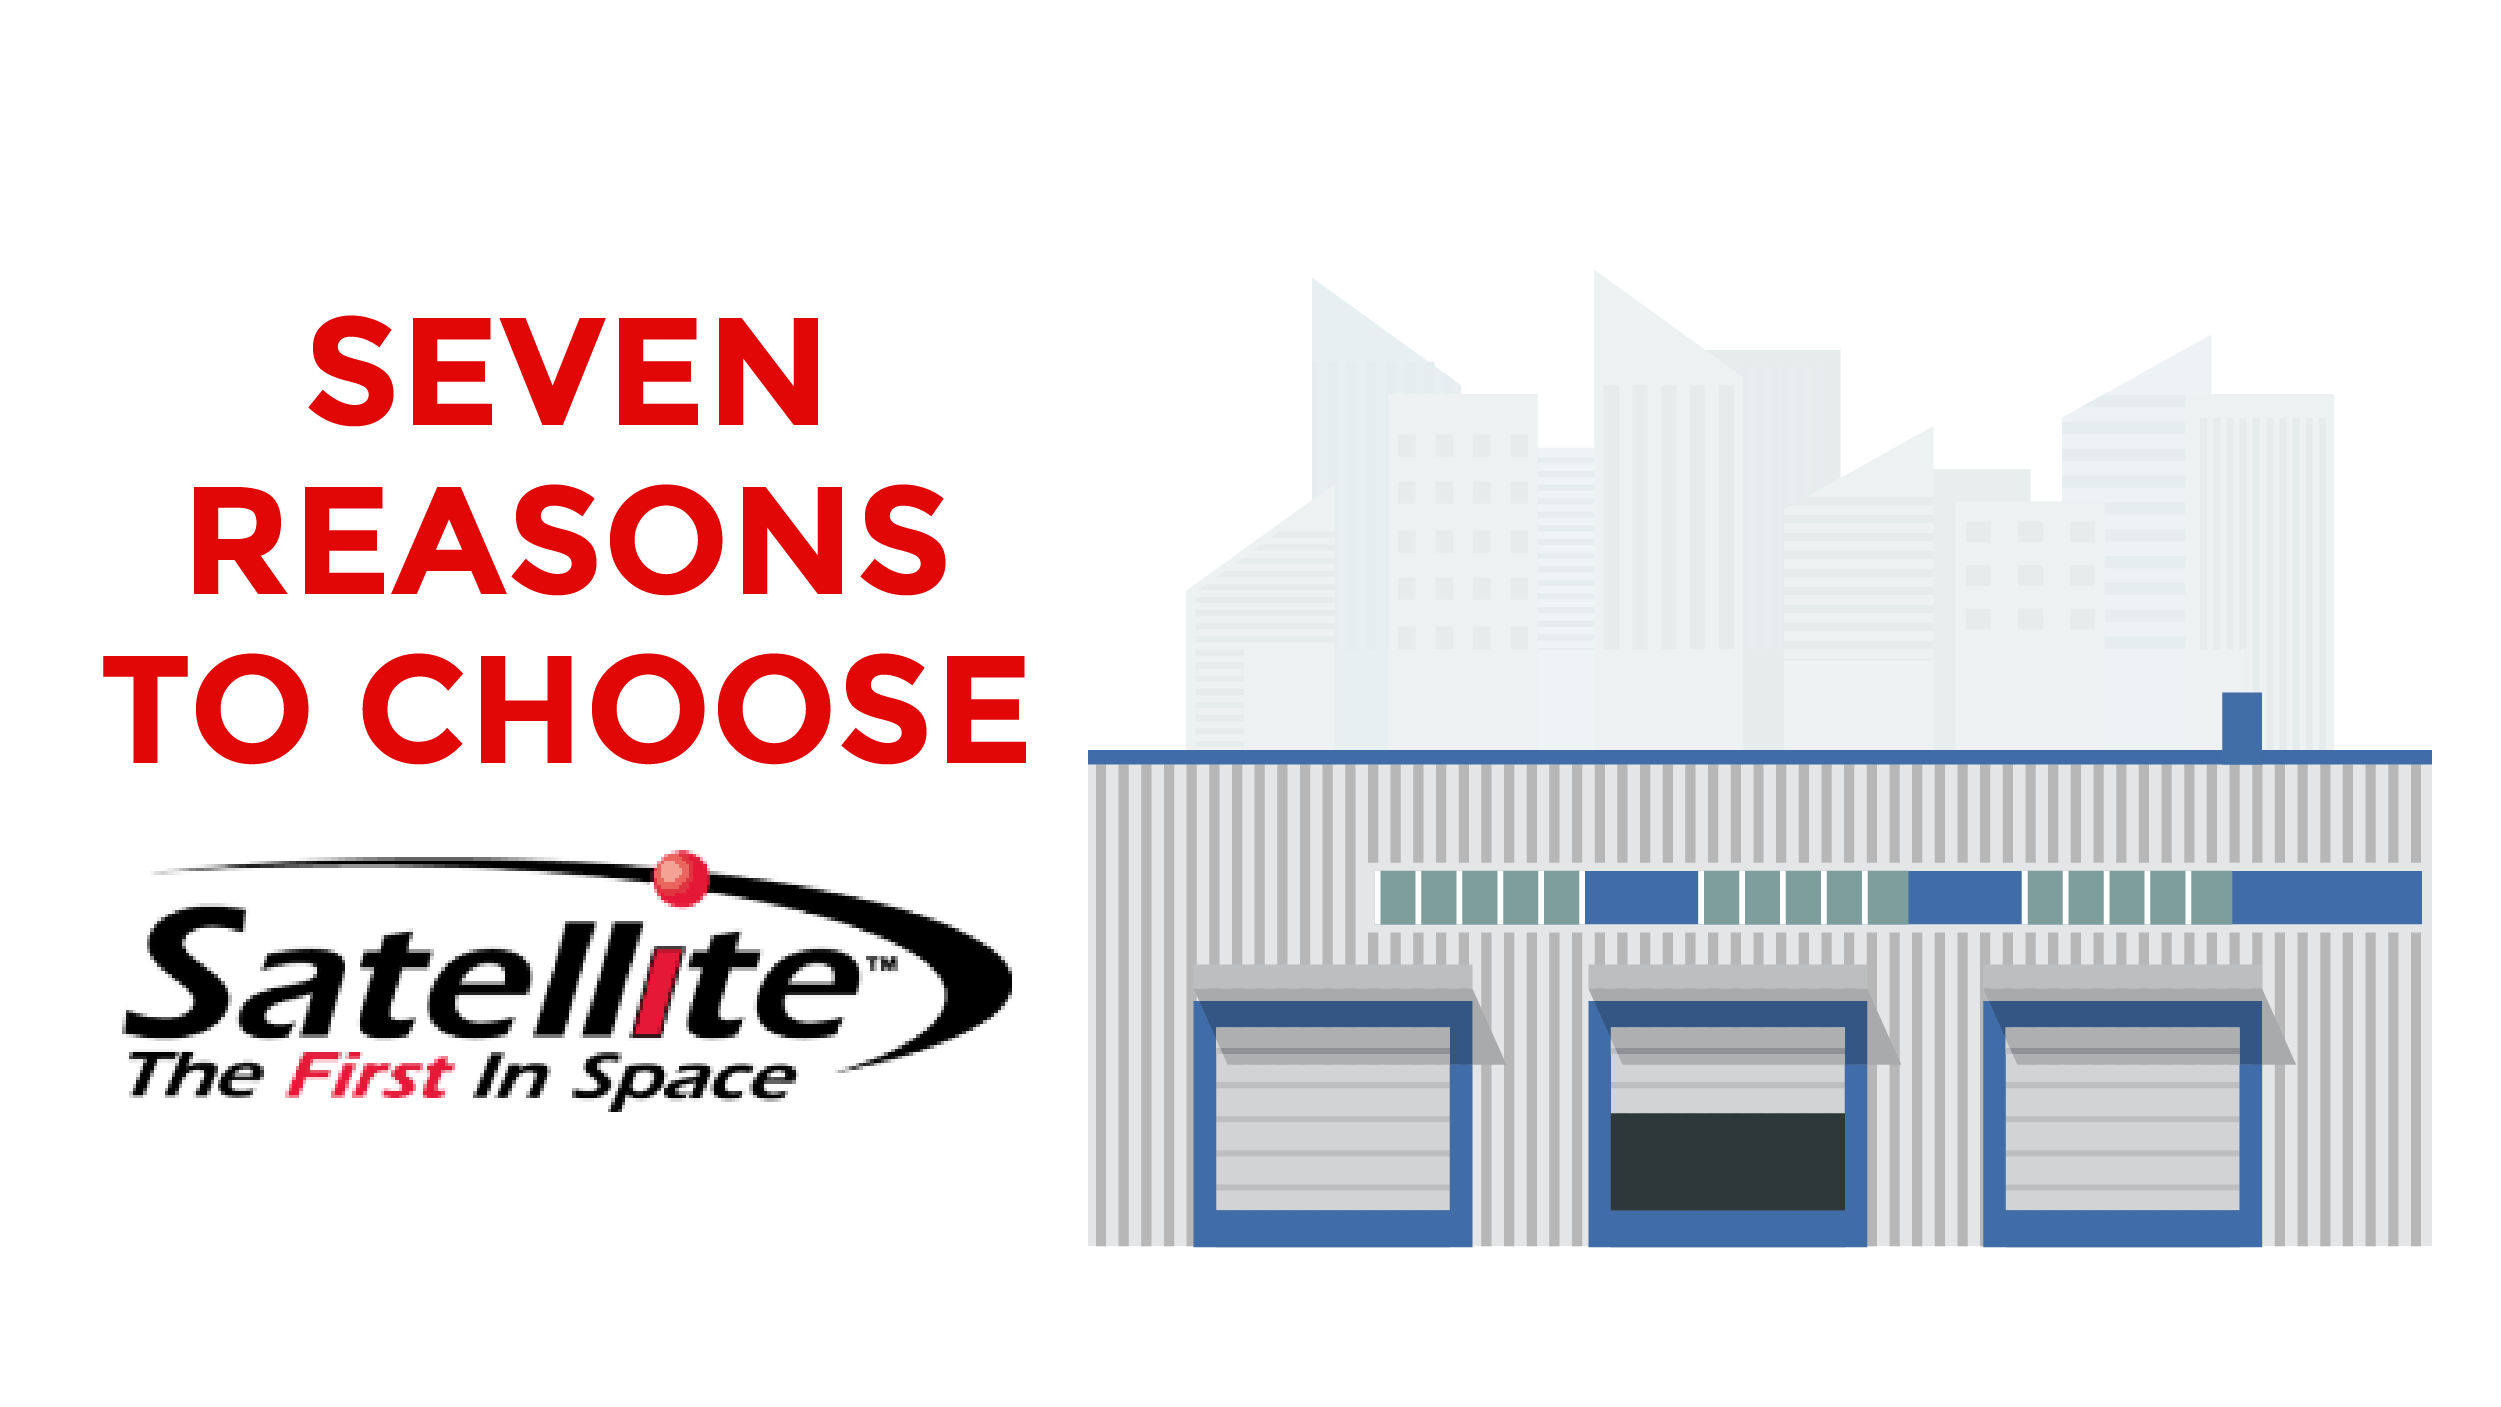 Seven Reasons to Choose Satellite Shelters.